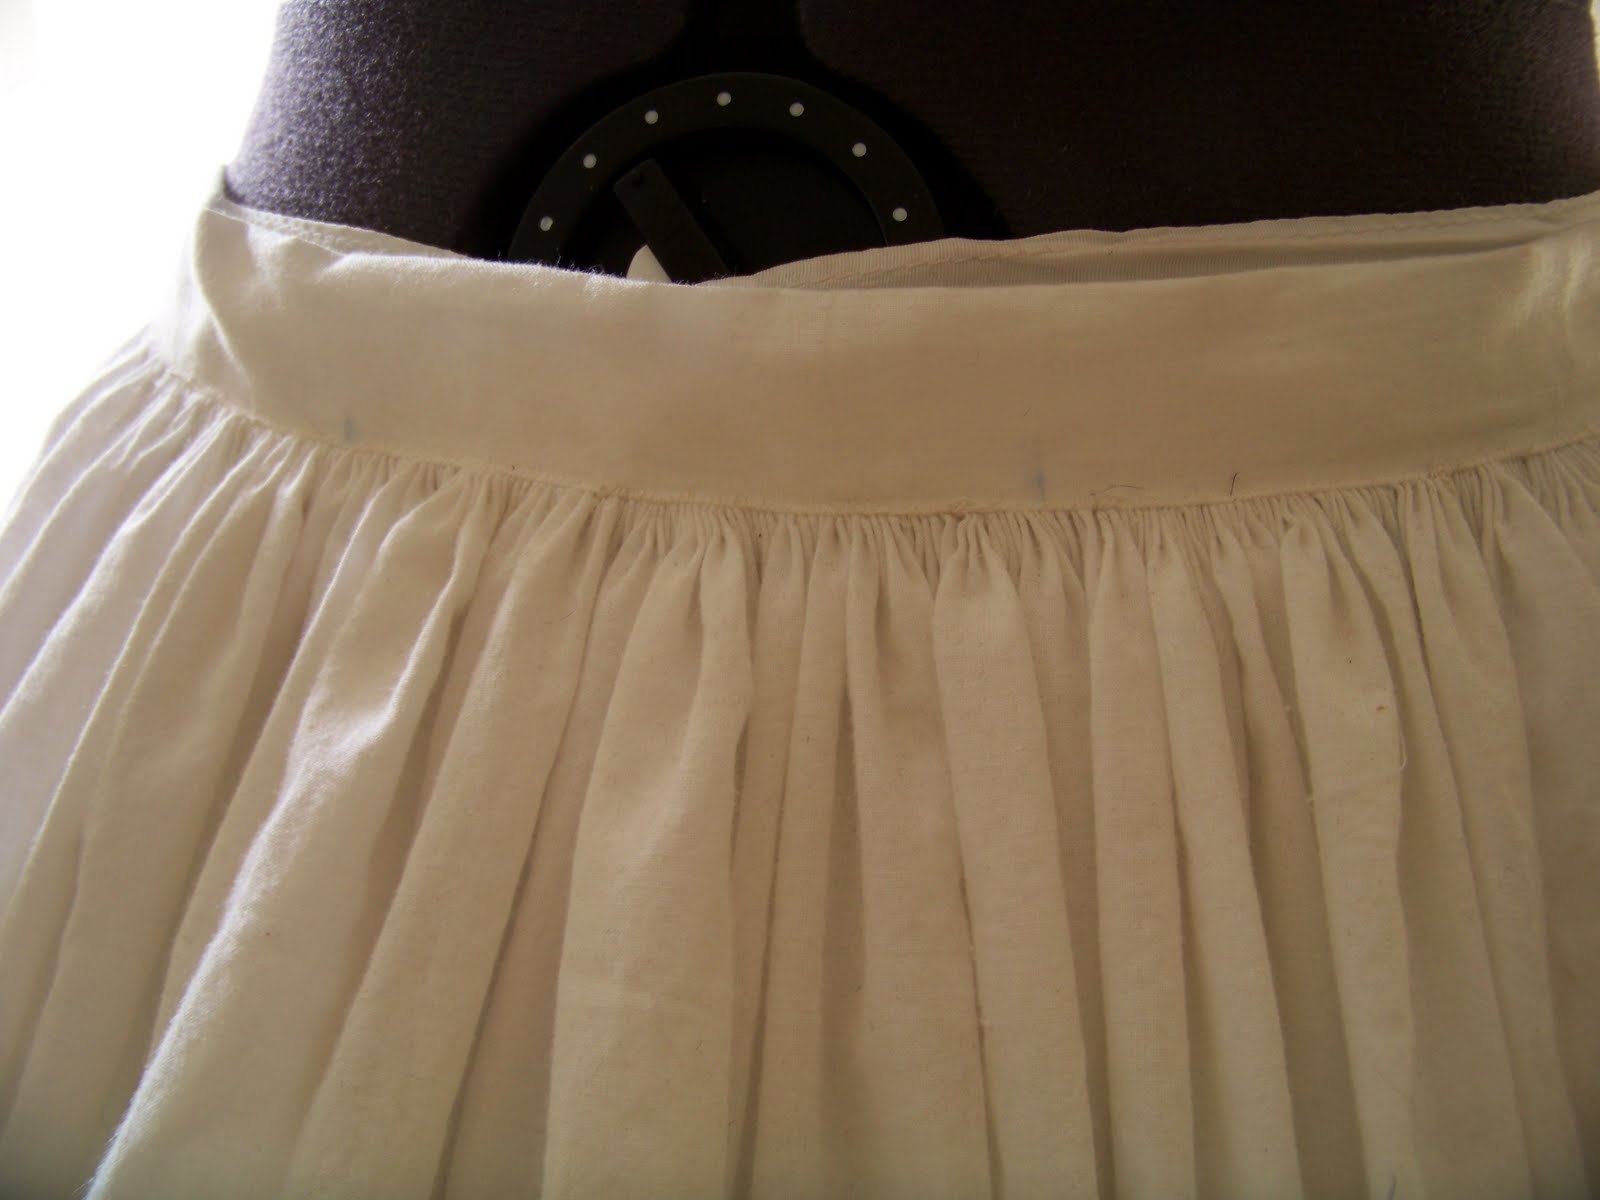 mid-century dress project, I recently hand-sewed a muslin petticoat